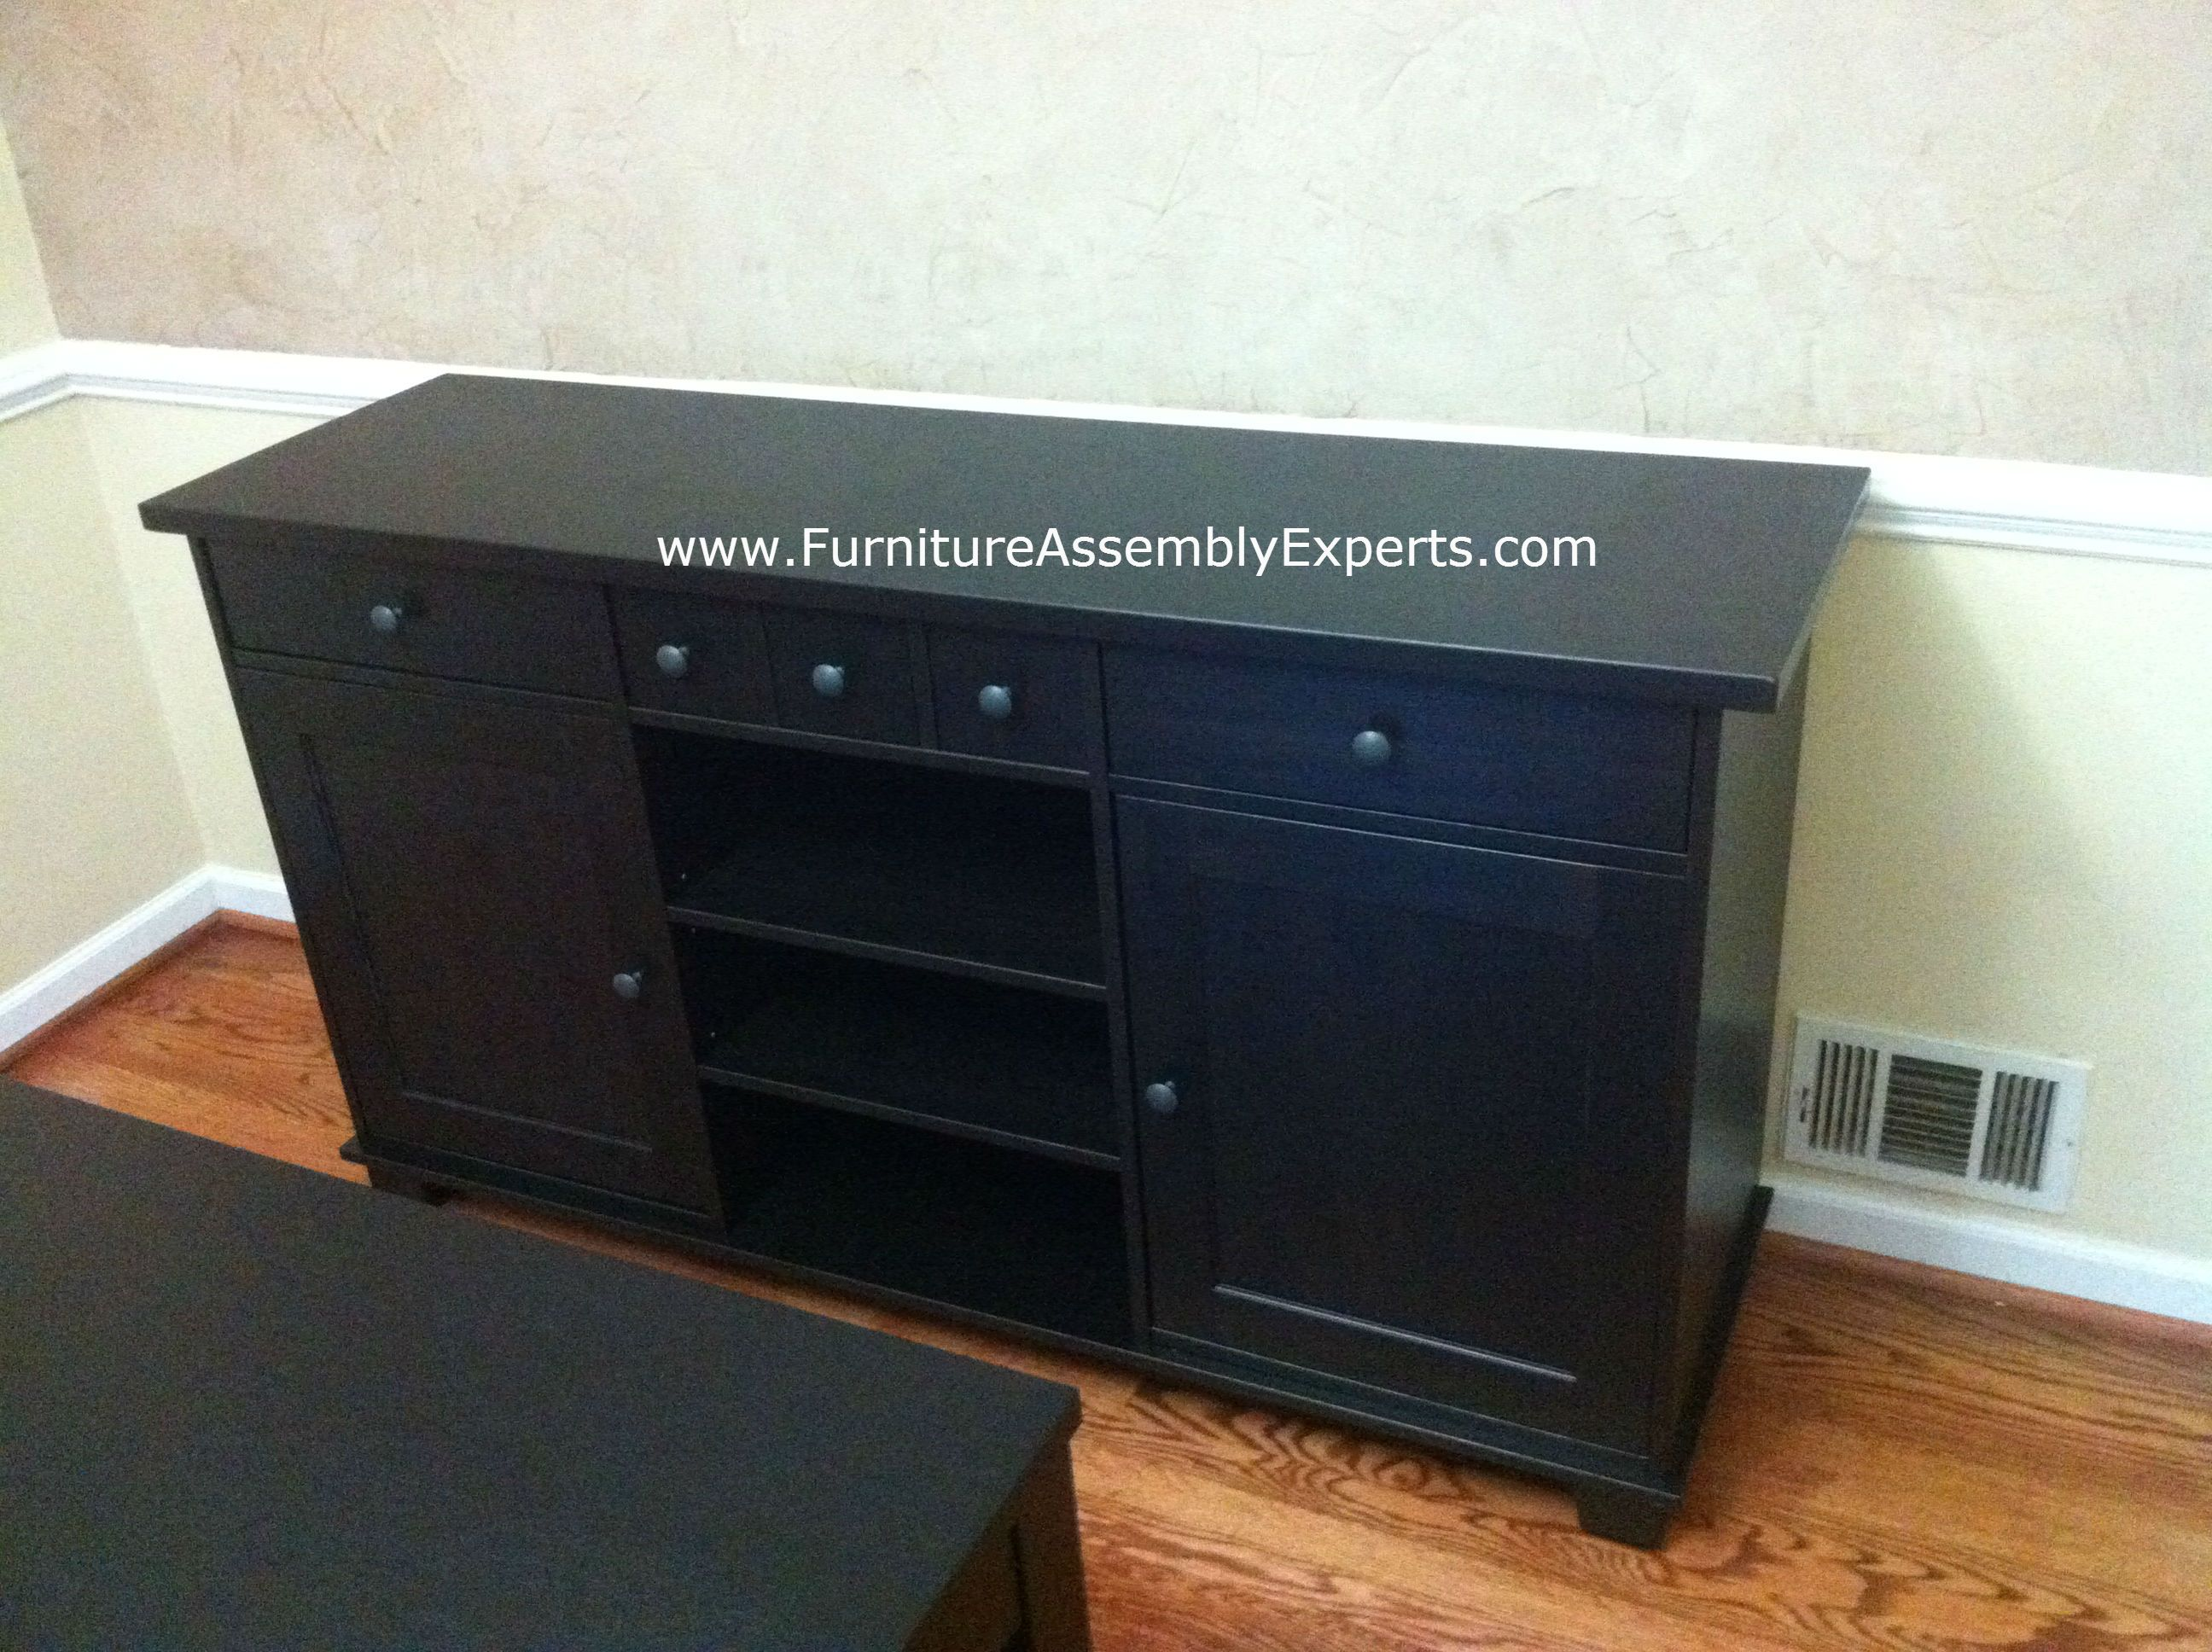 Ikea Stornas Buffet Assembled In Washington Dc For A Customer